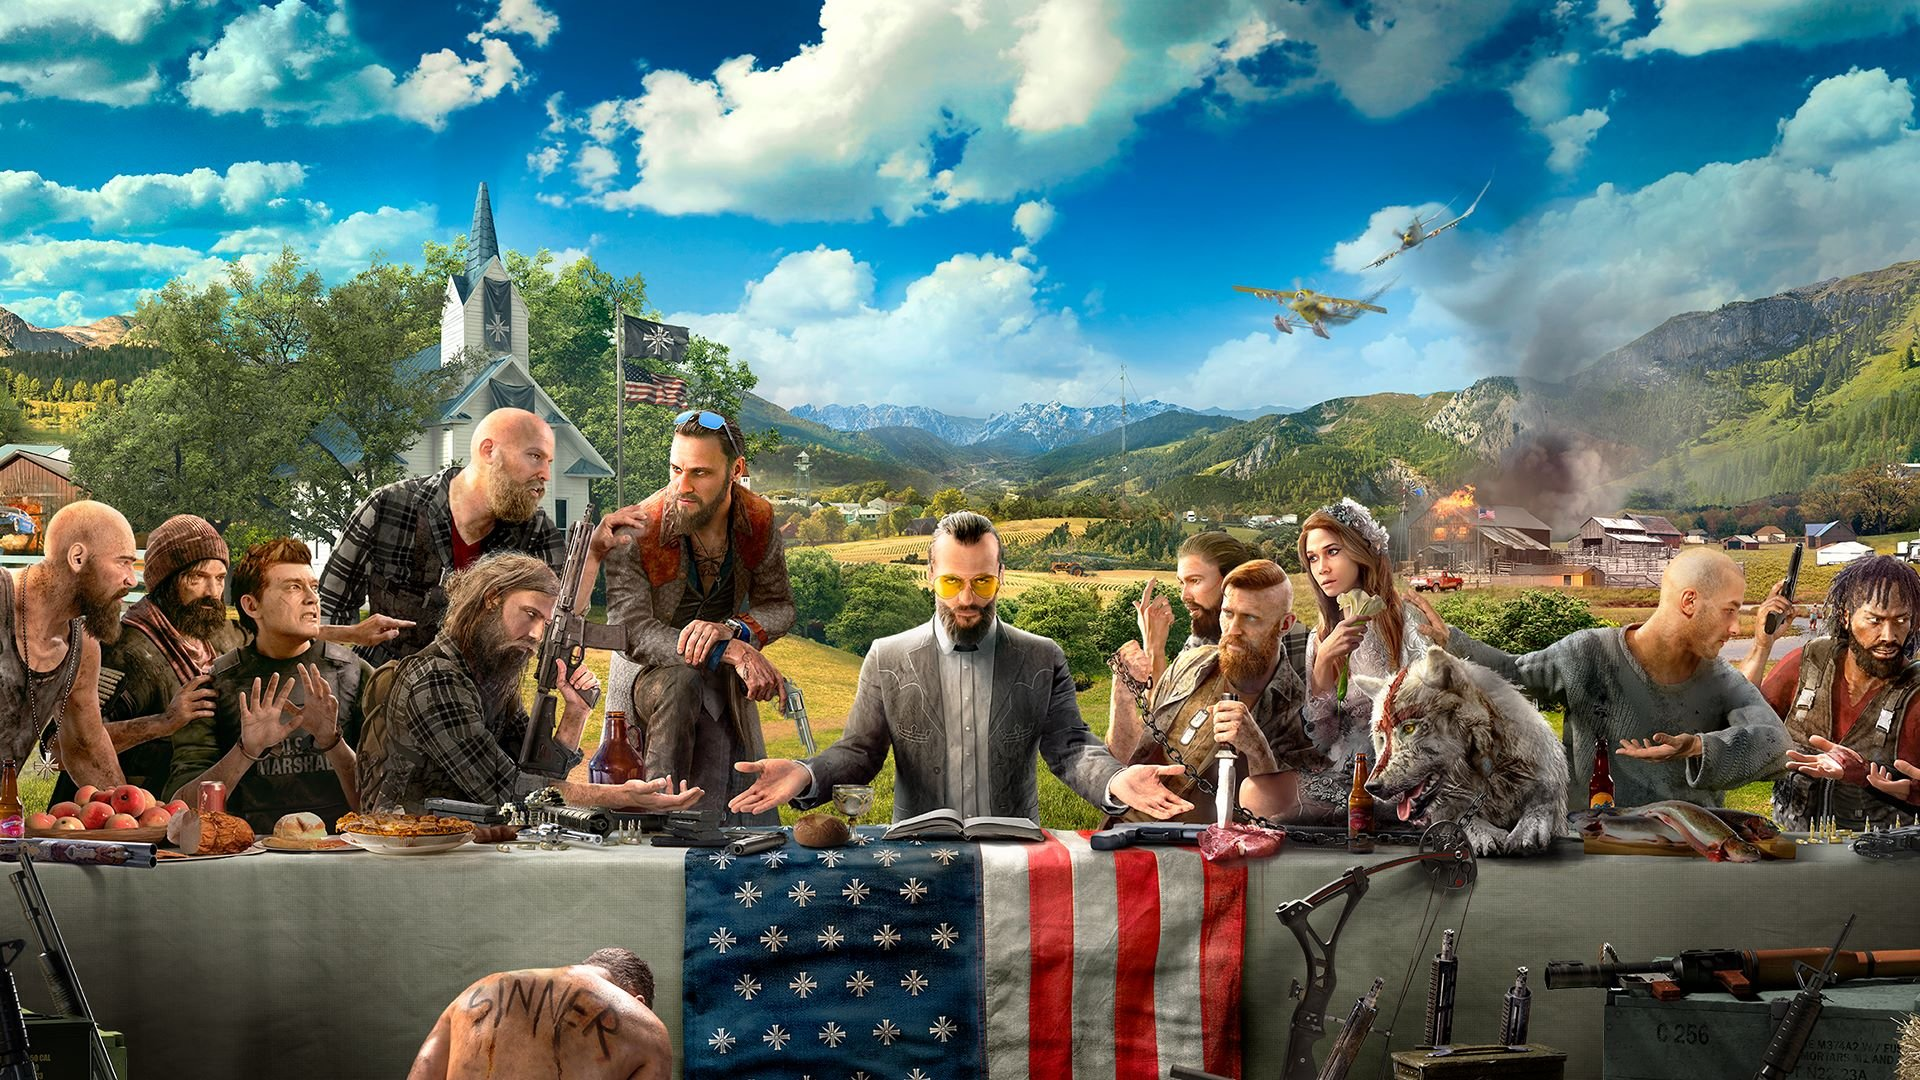 Far Cry 6: Ubisoft announces post-apocalyptic setting for latest Far Cry game